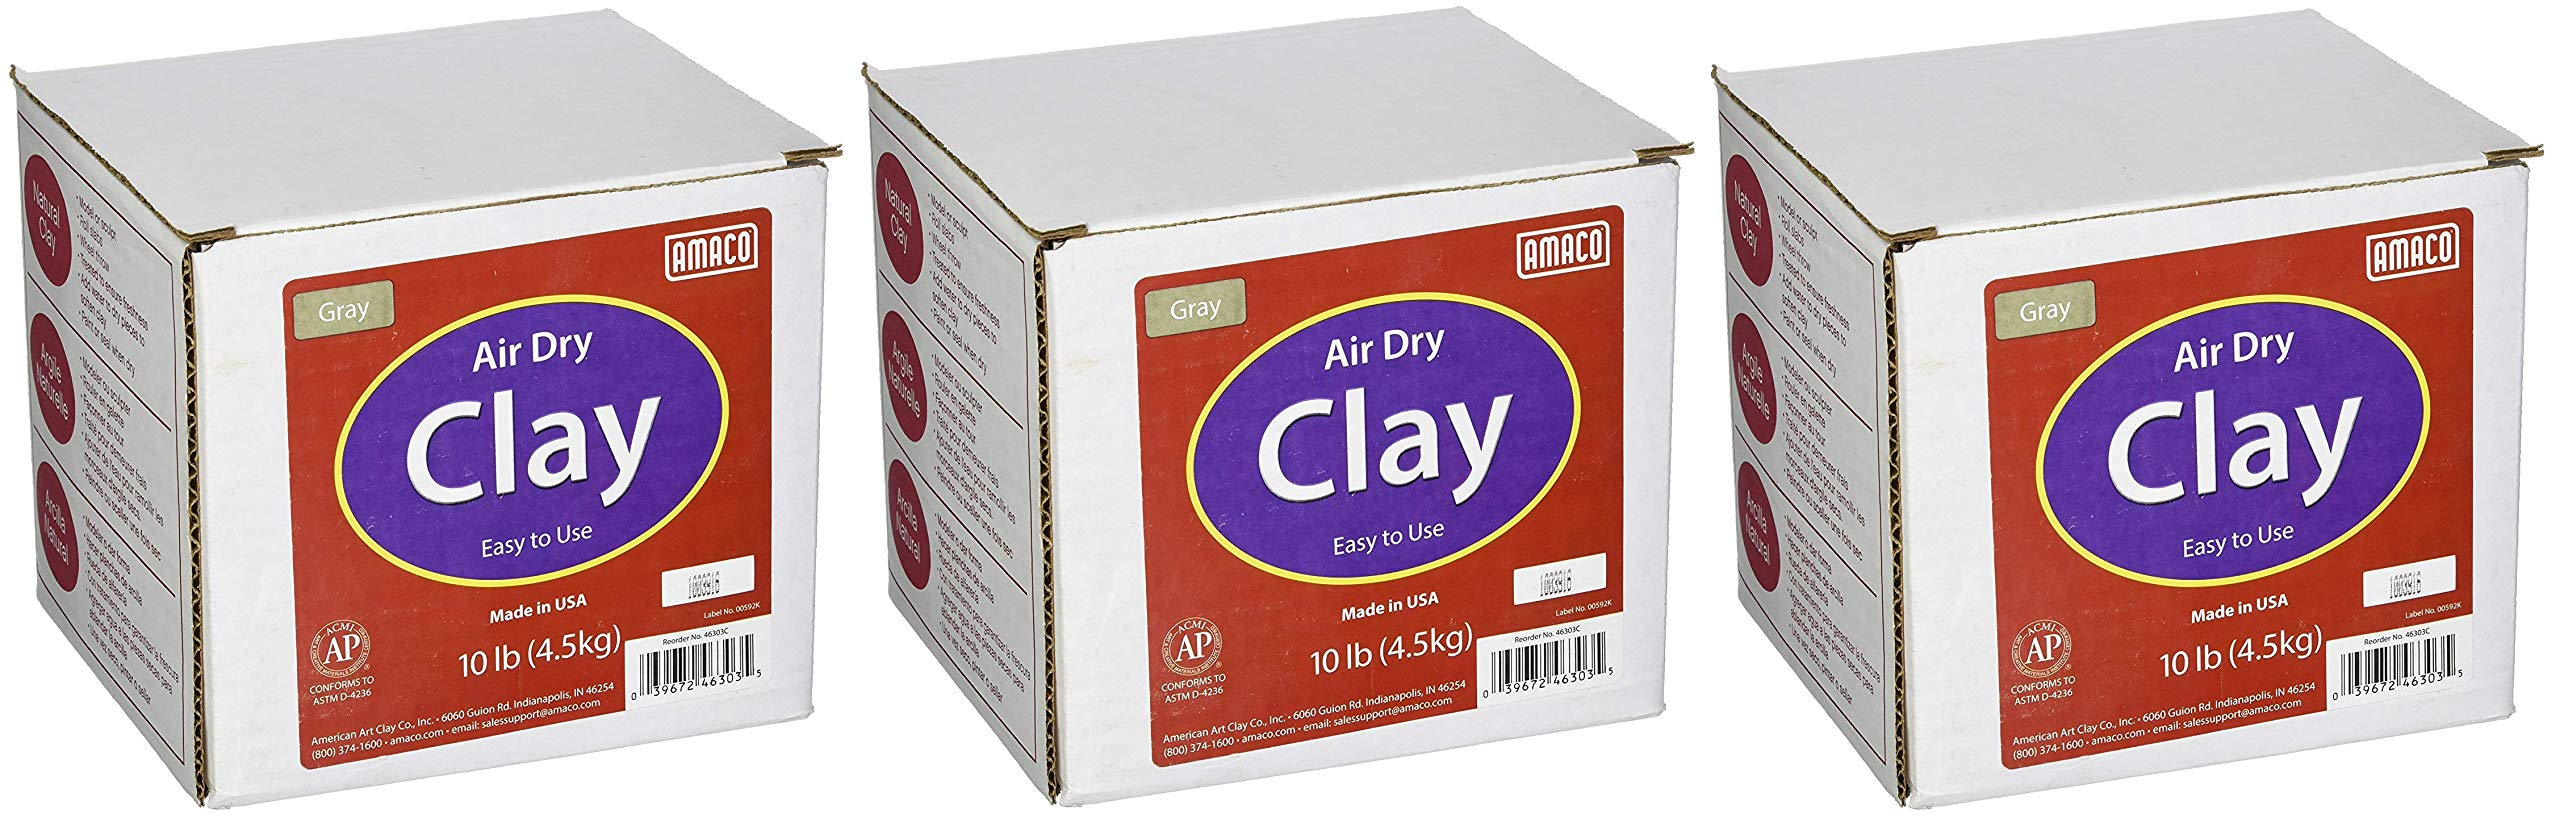 AMACO 4630-3C Air Dry Modeling Clay, 10-Pound, Gray (Pack of 3) by AMACO (Image #1)